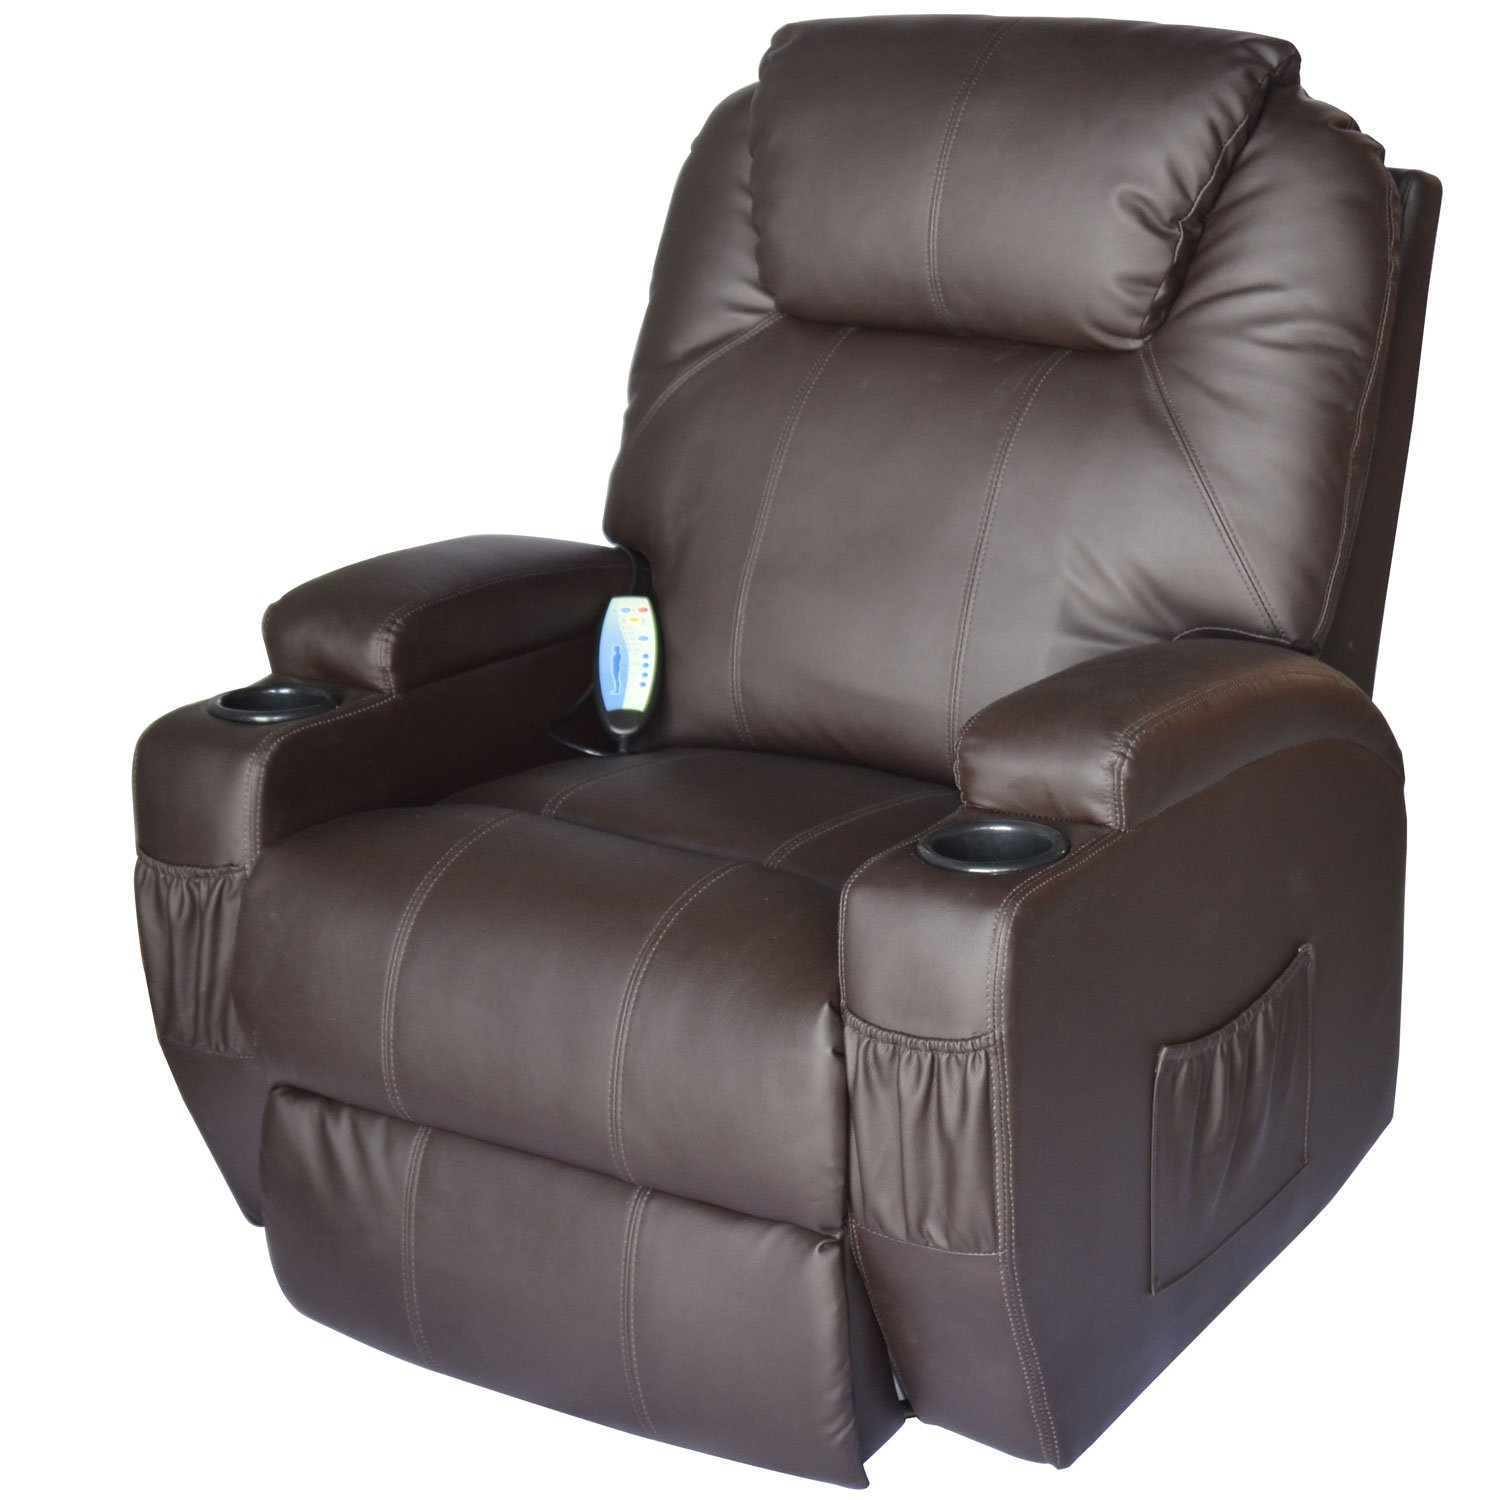 Best space saving recliners recommended best recliners - Reclining chairs for small spaces plan ...